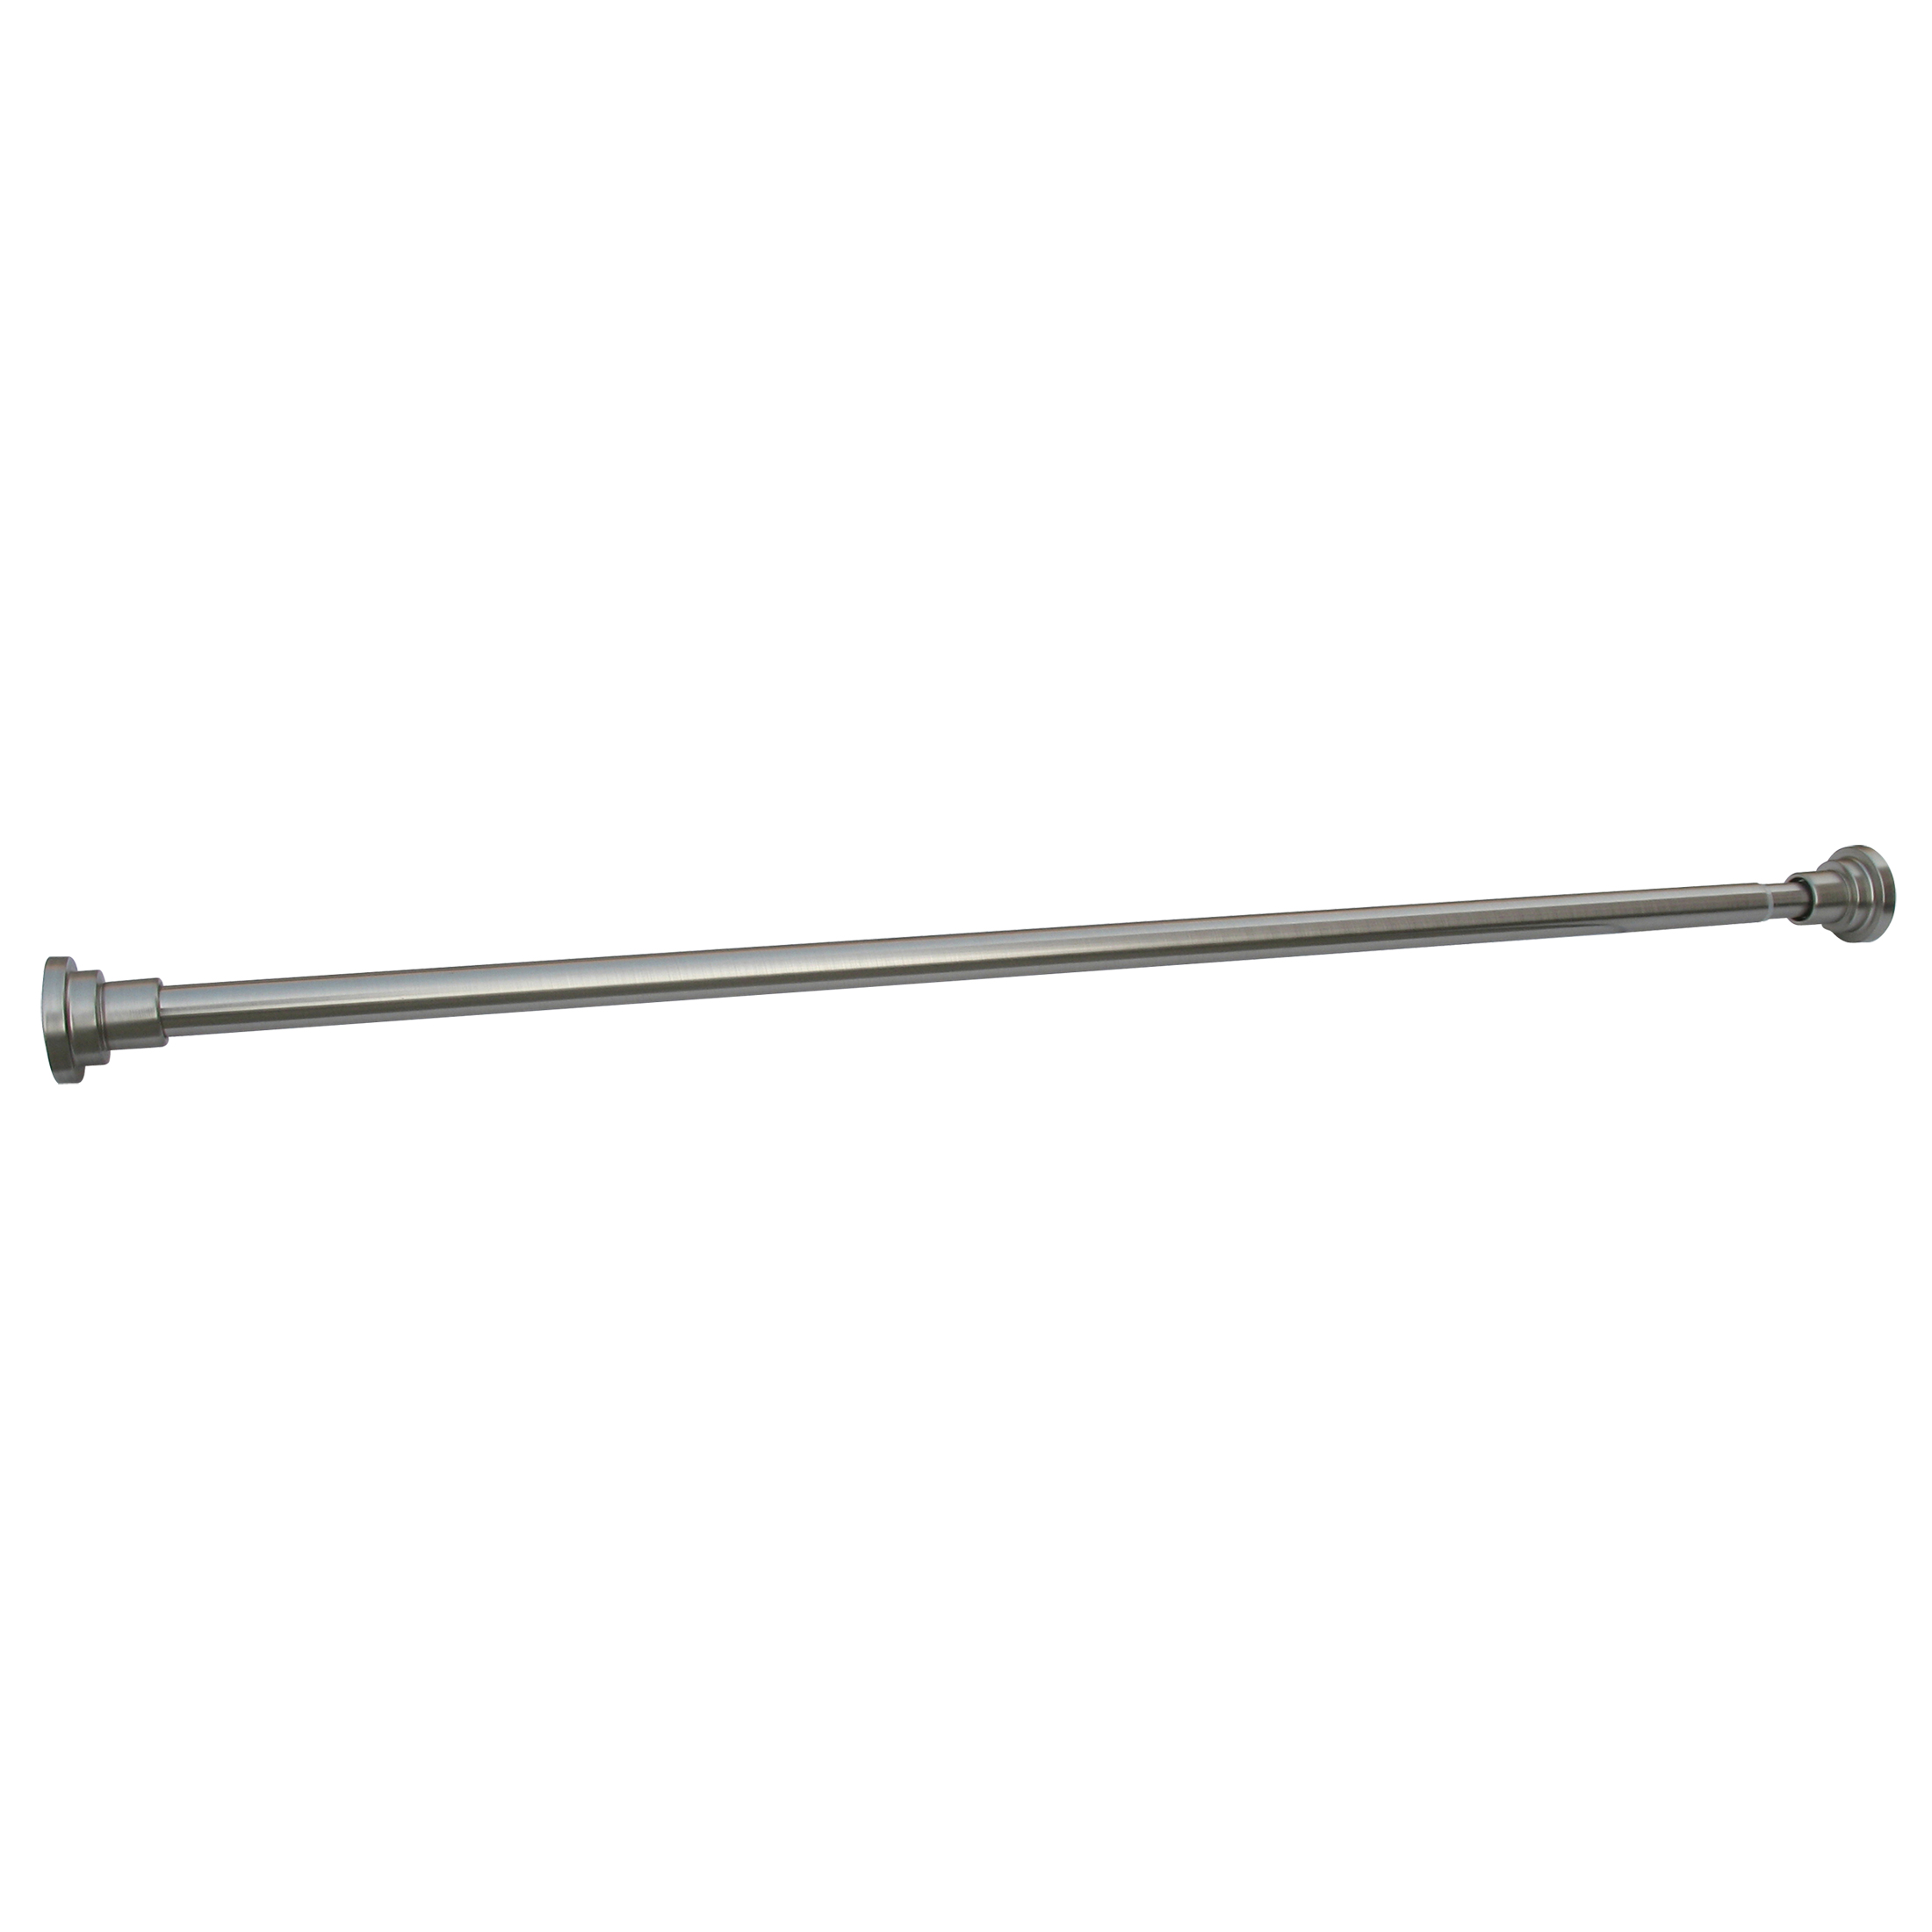 Adjustable Shower Rod, Satin Nickel